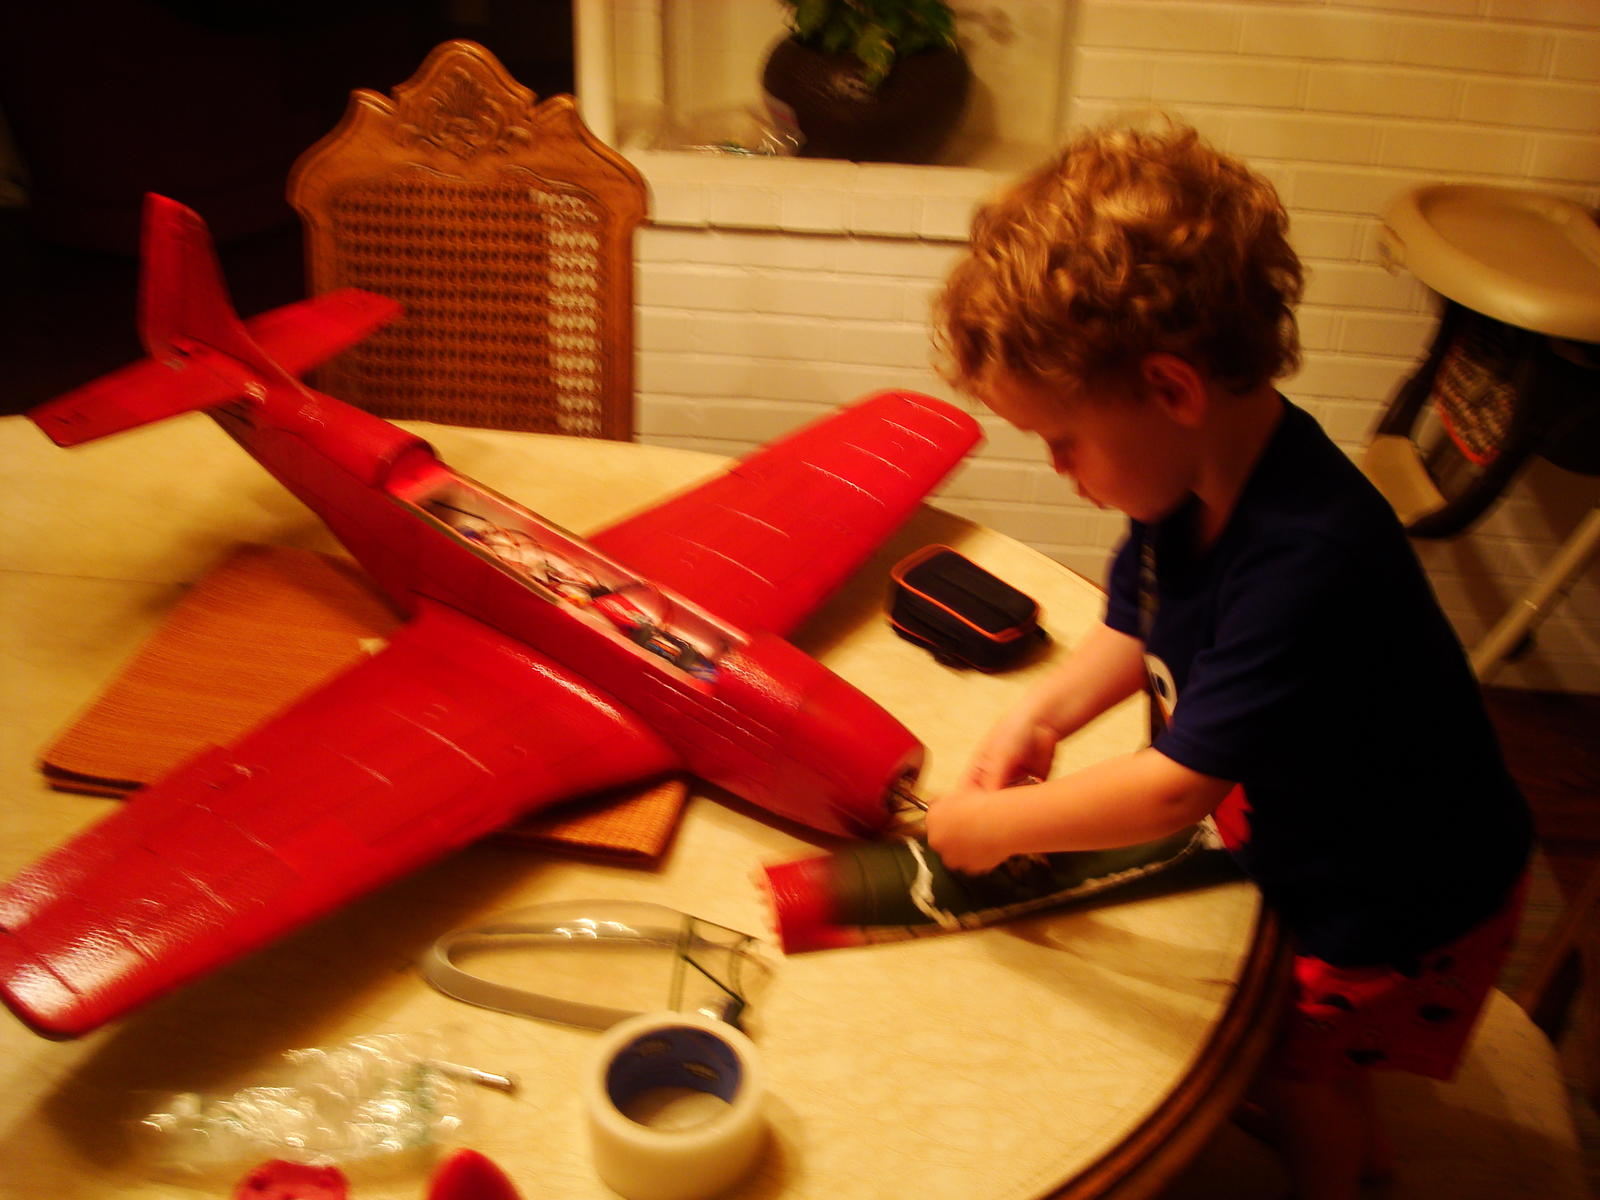 Name: DSC03032.jpg